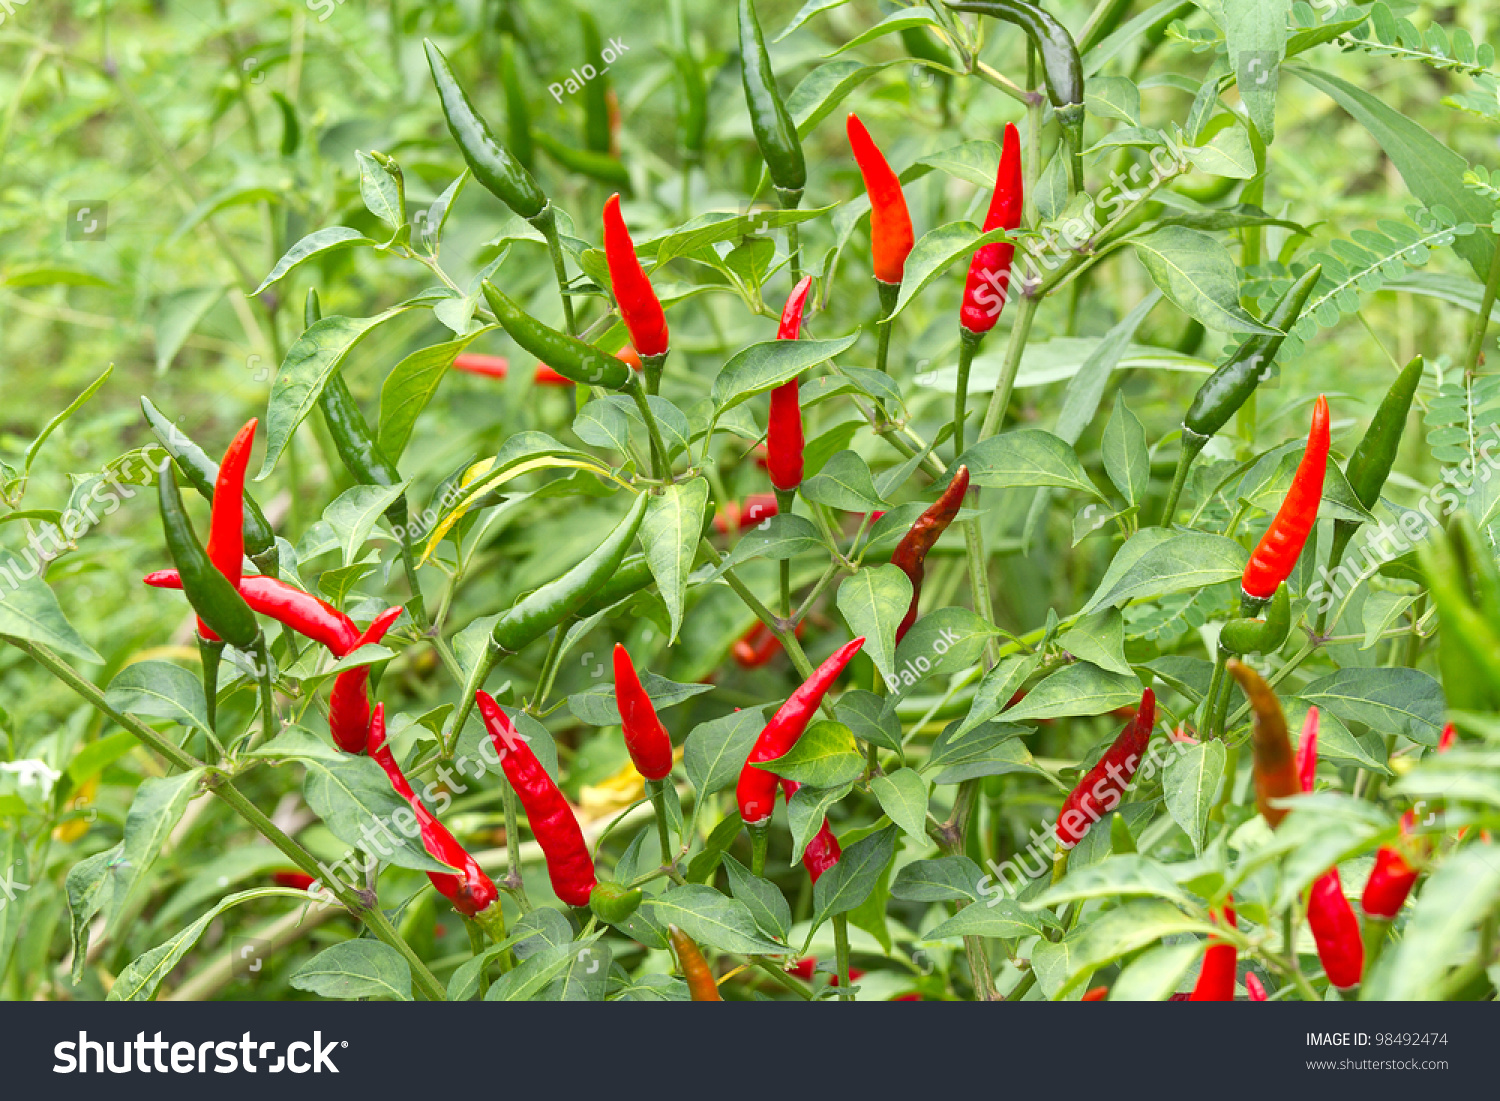 Red Chili Pepper On The Plant Stock Photo 98492474 ...